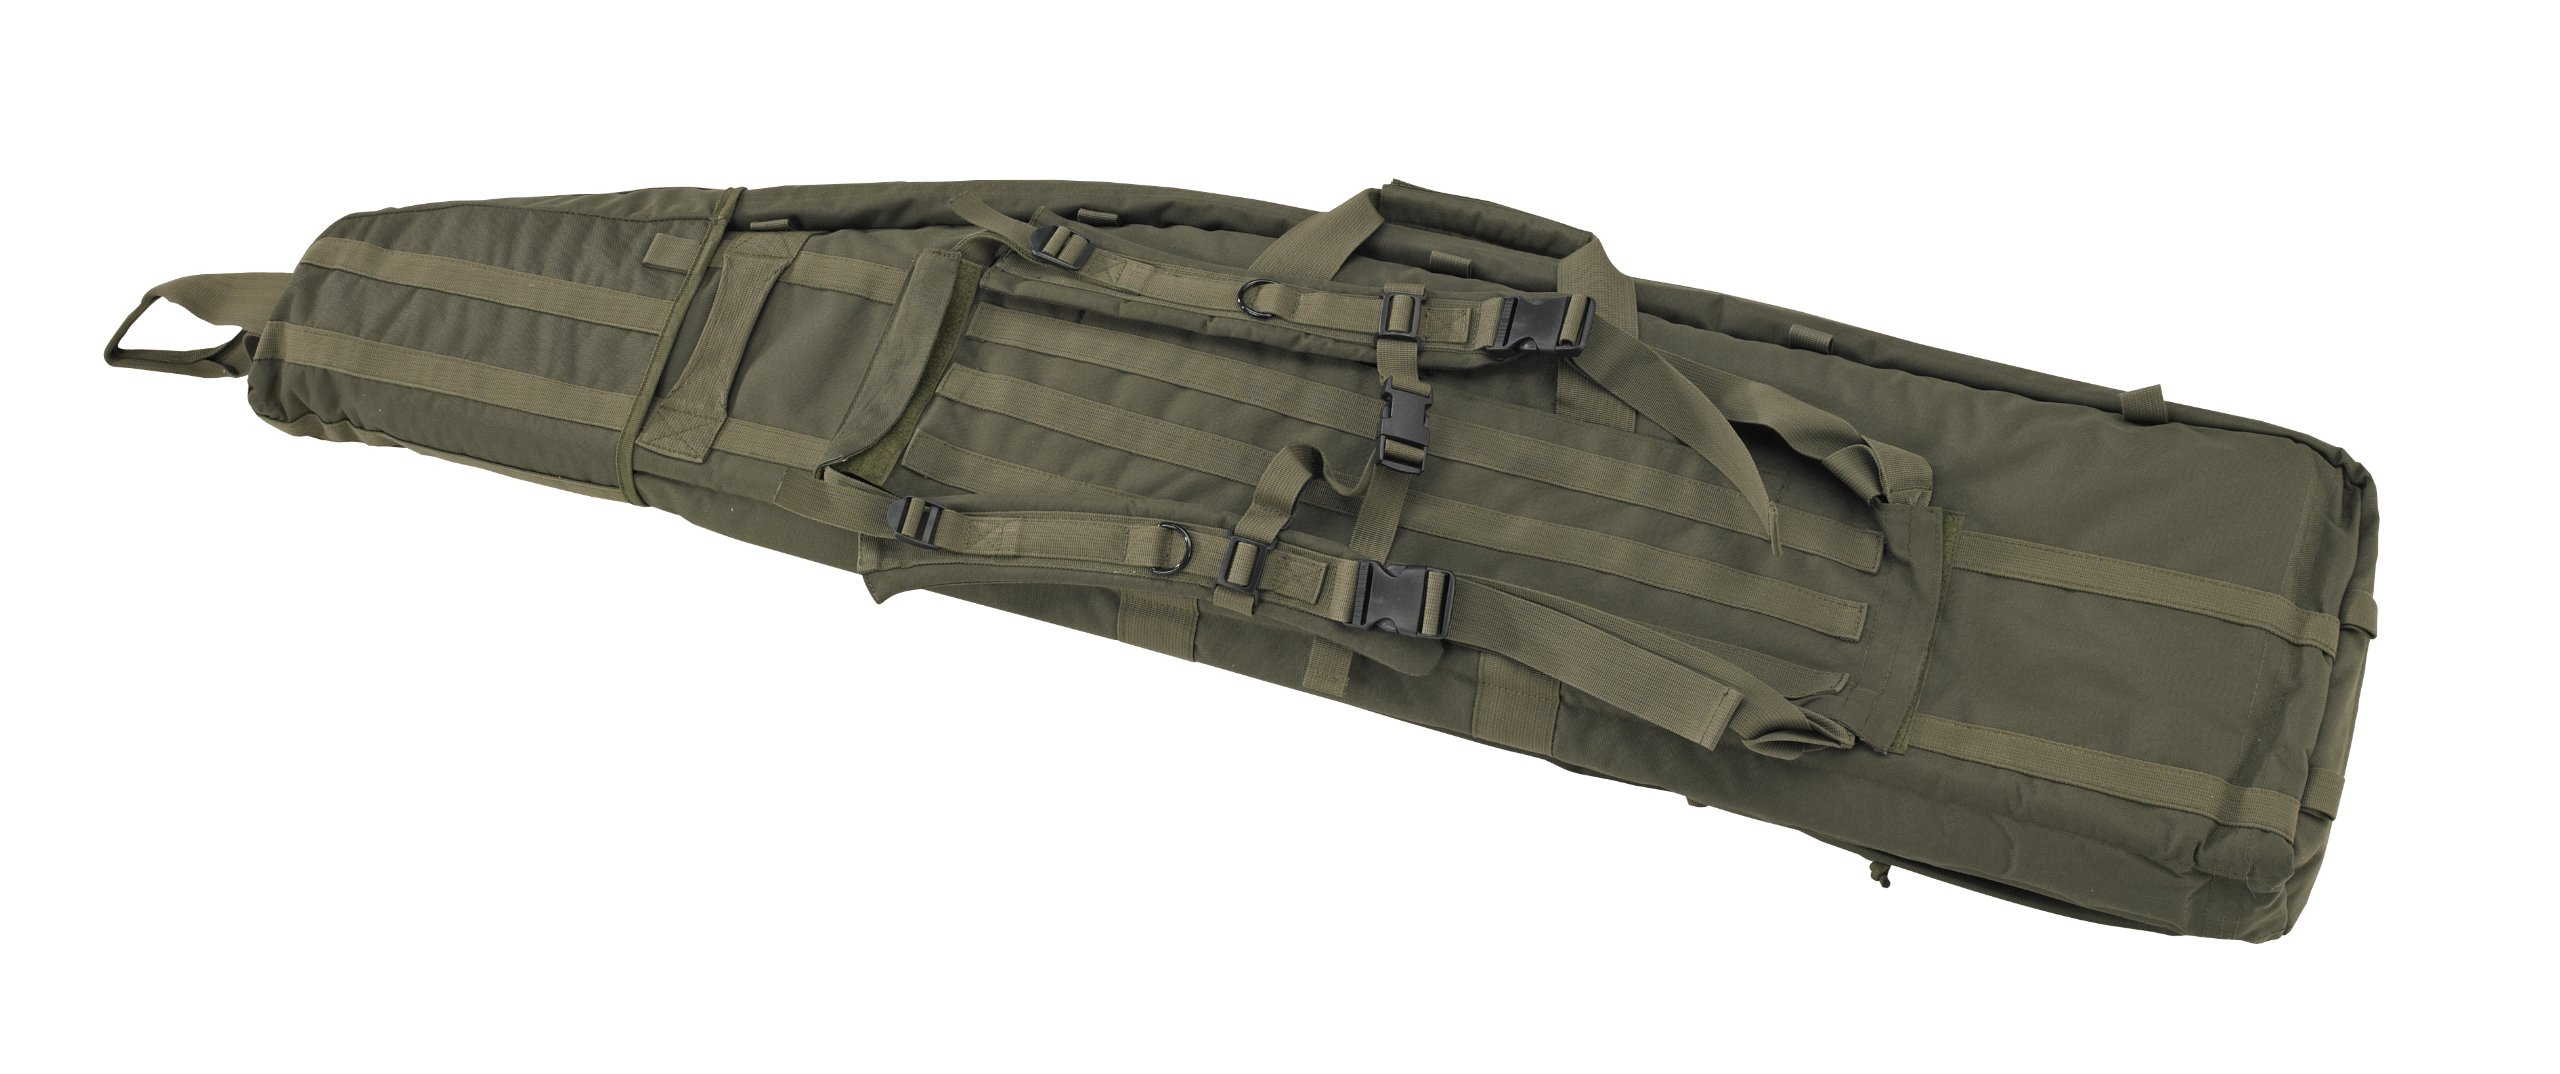 US PeaceKeeper P30052 52-Inch Drag Case (Medium, OD-Green) by US PeaceKeeper Products (Image #2)